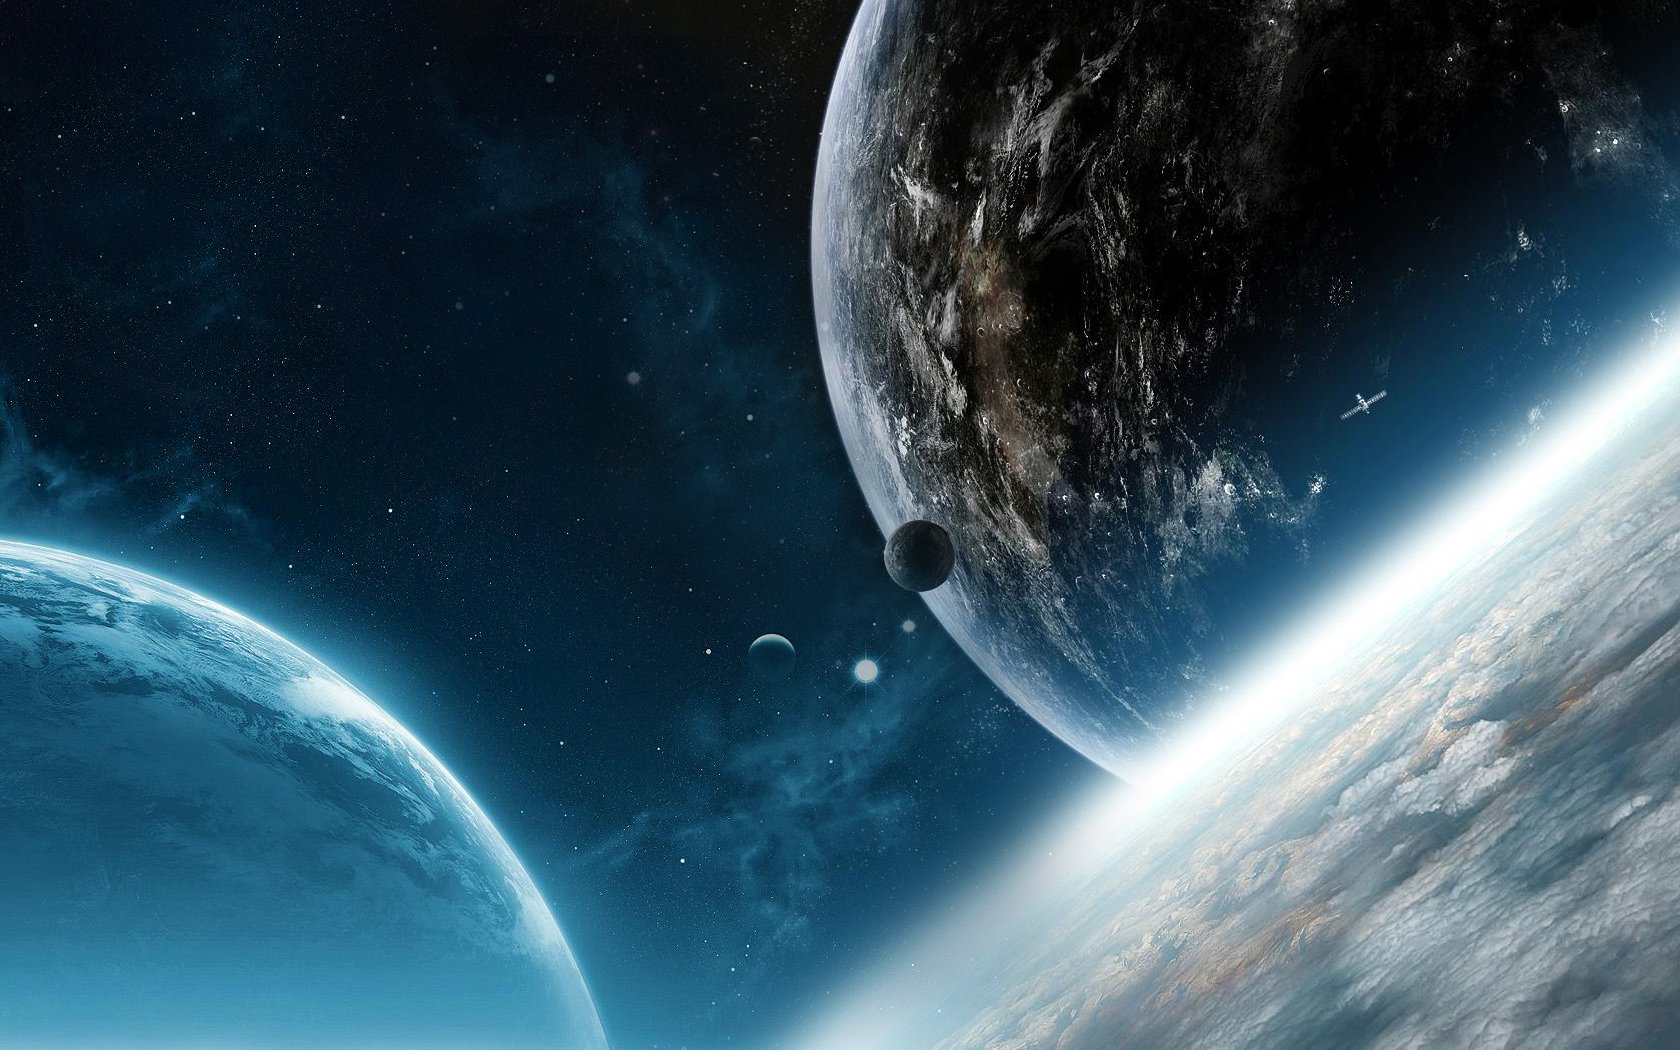 10 Most Popular Beautiful Space Wallpapers 1920x1080 Full: Planets Wallpaper And Background Image